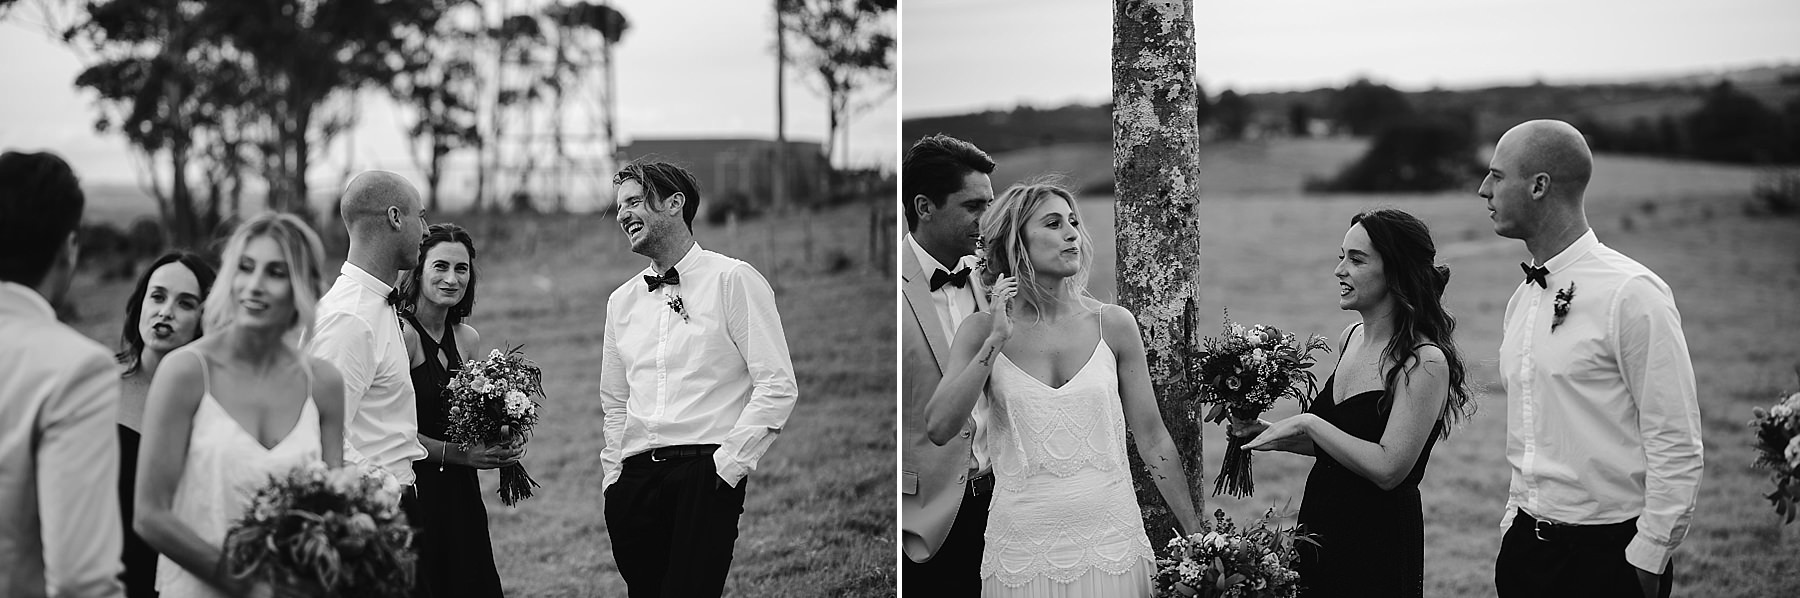 byron_bay_wedding_cj_86